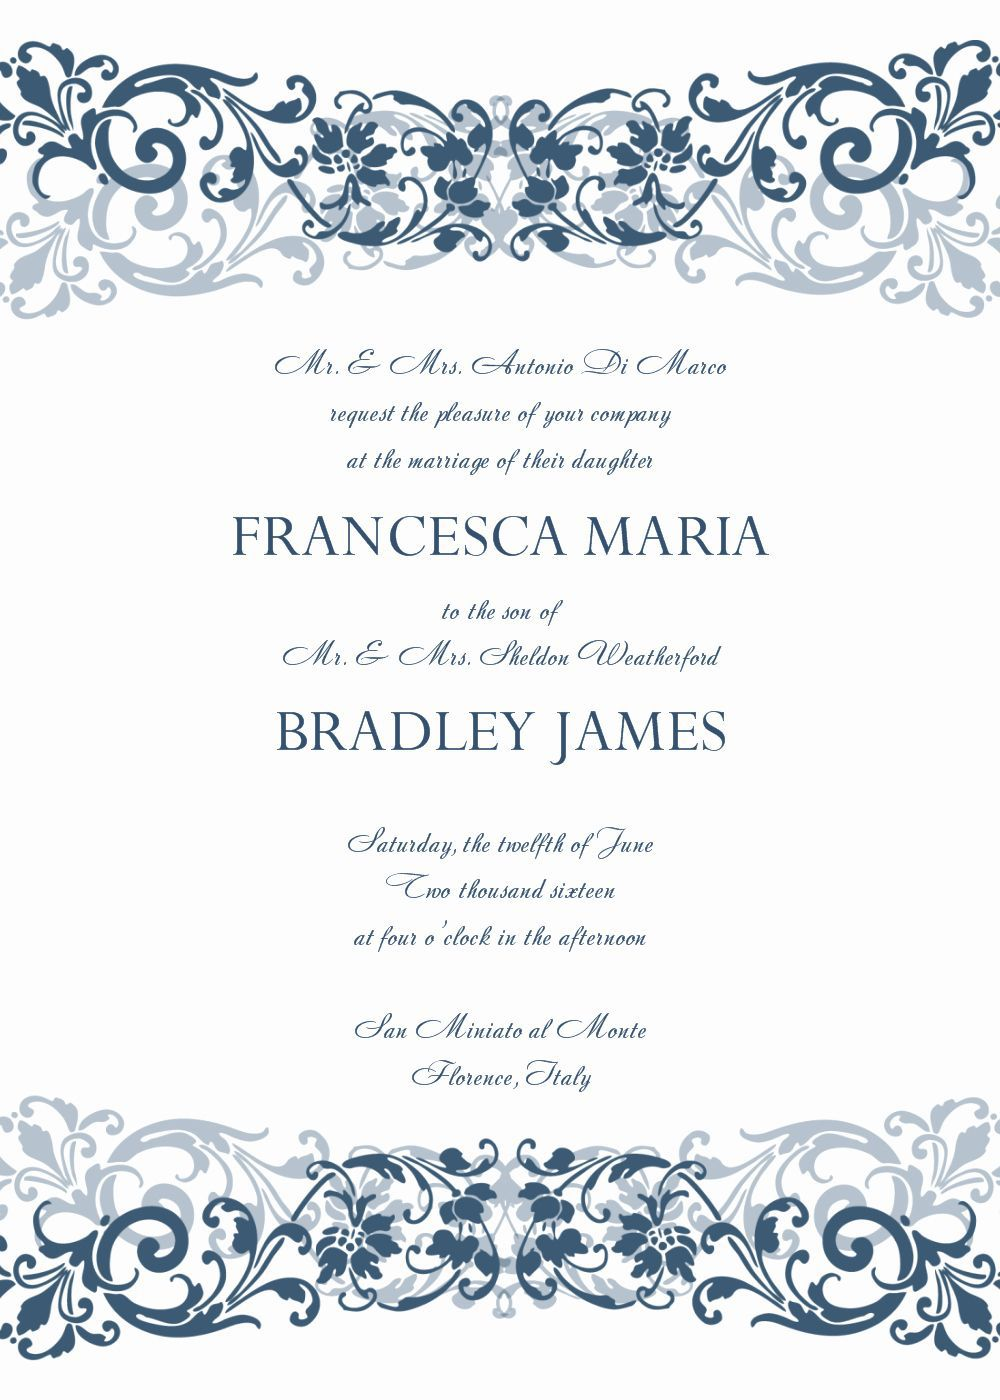 007 Stirring Formal Wedding Invitation Template Concept  Templates Email Format Wording FreeFull